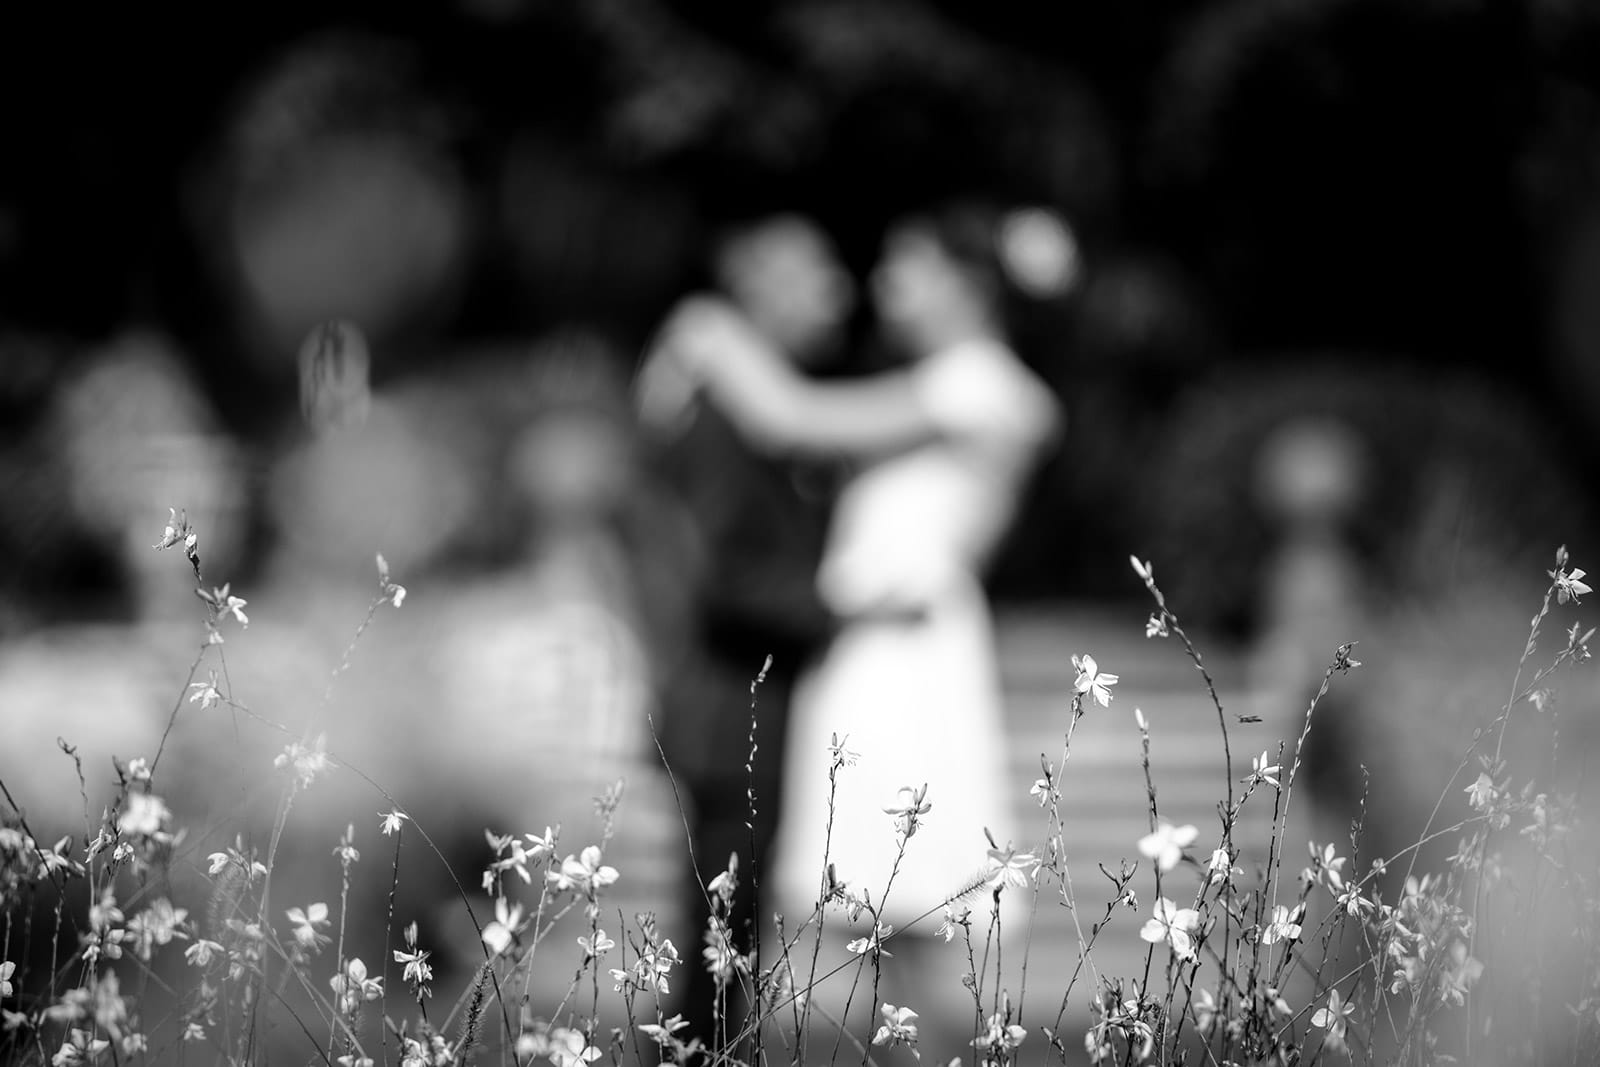 How to choose your wedding photographer 2018 2019 Best Wedding Photographer comment choisir son photographe de mariage 2018 2019 meilleur photographe de mariage Lyon Photographe mariage Lyon Photographe reportage mariage Lyon